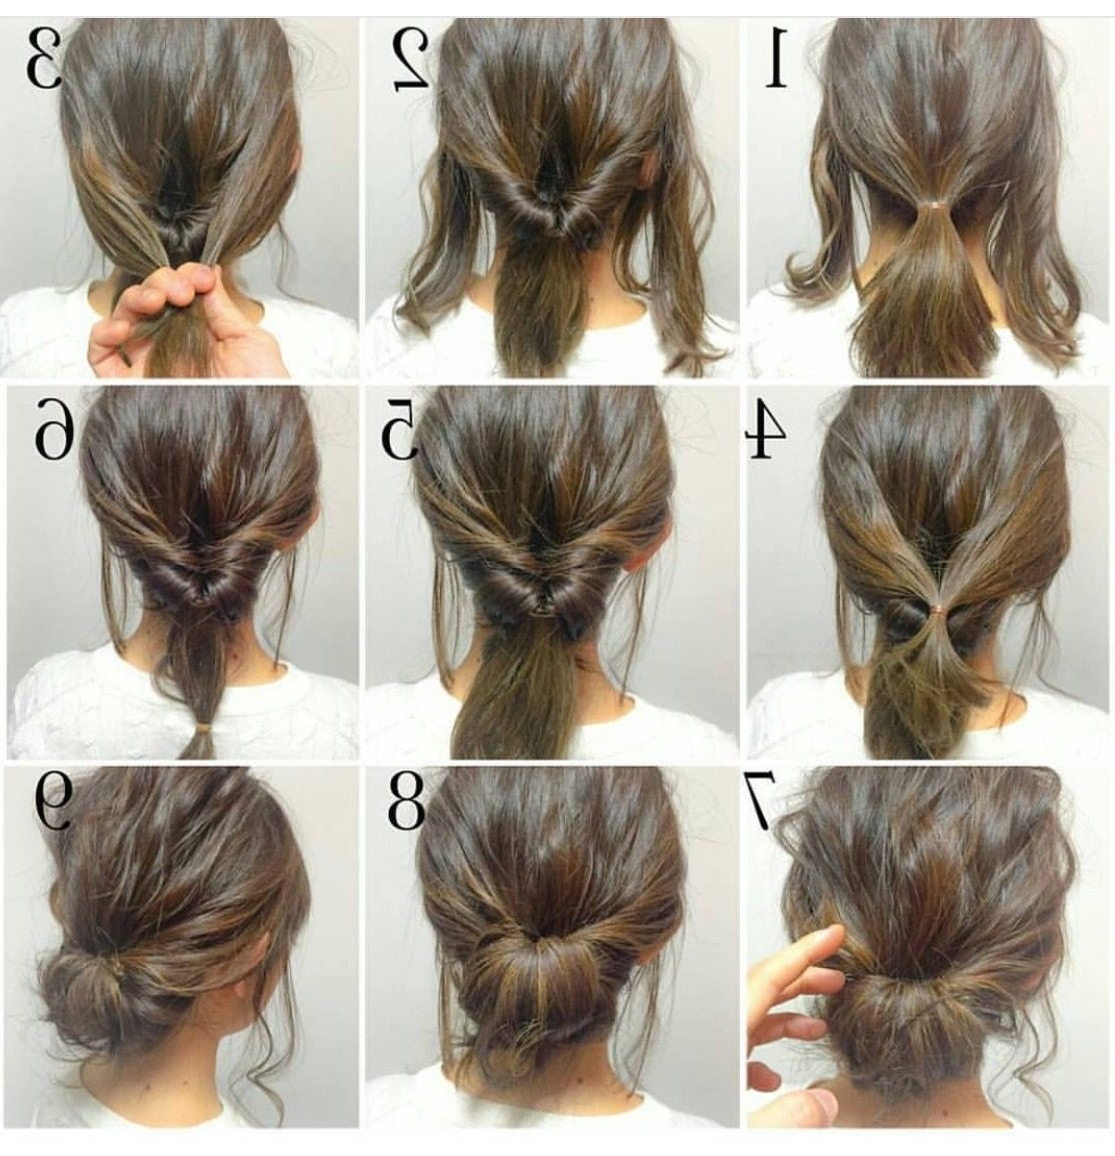 Easy, Hope This Works Out Quick Morning Hair! | • H A I R Pertaining To Simple Hair Updo Hairstyles (View 11 of 15)